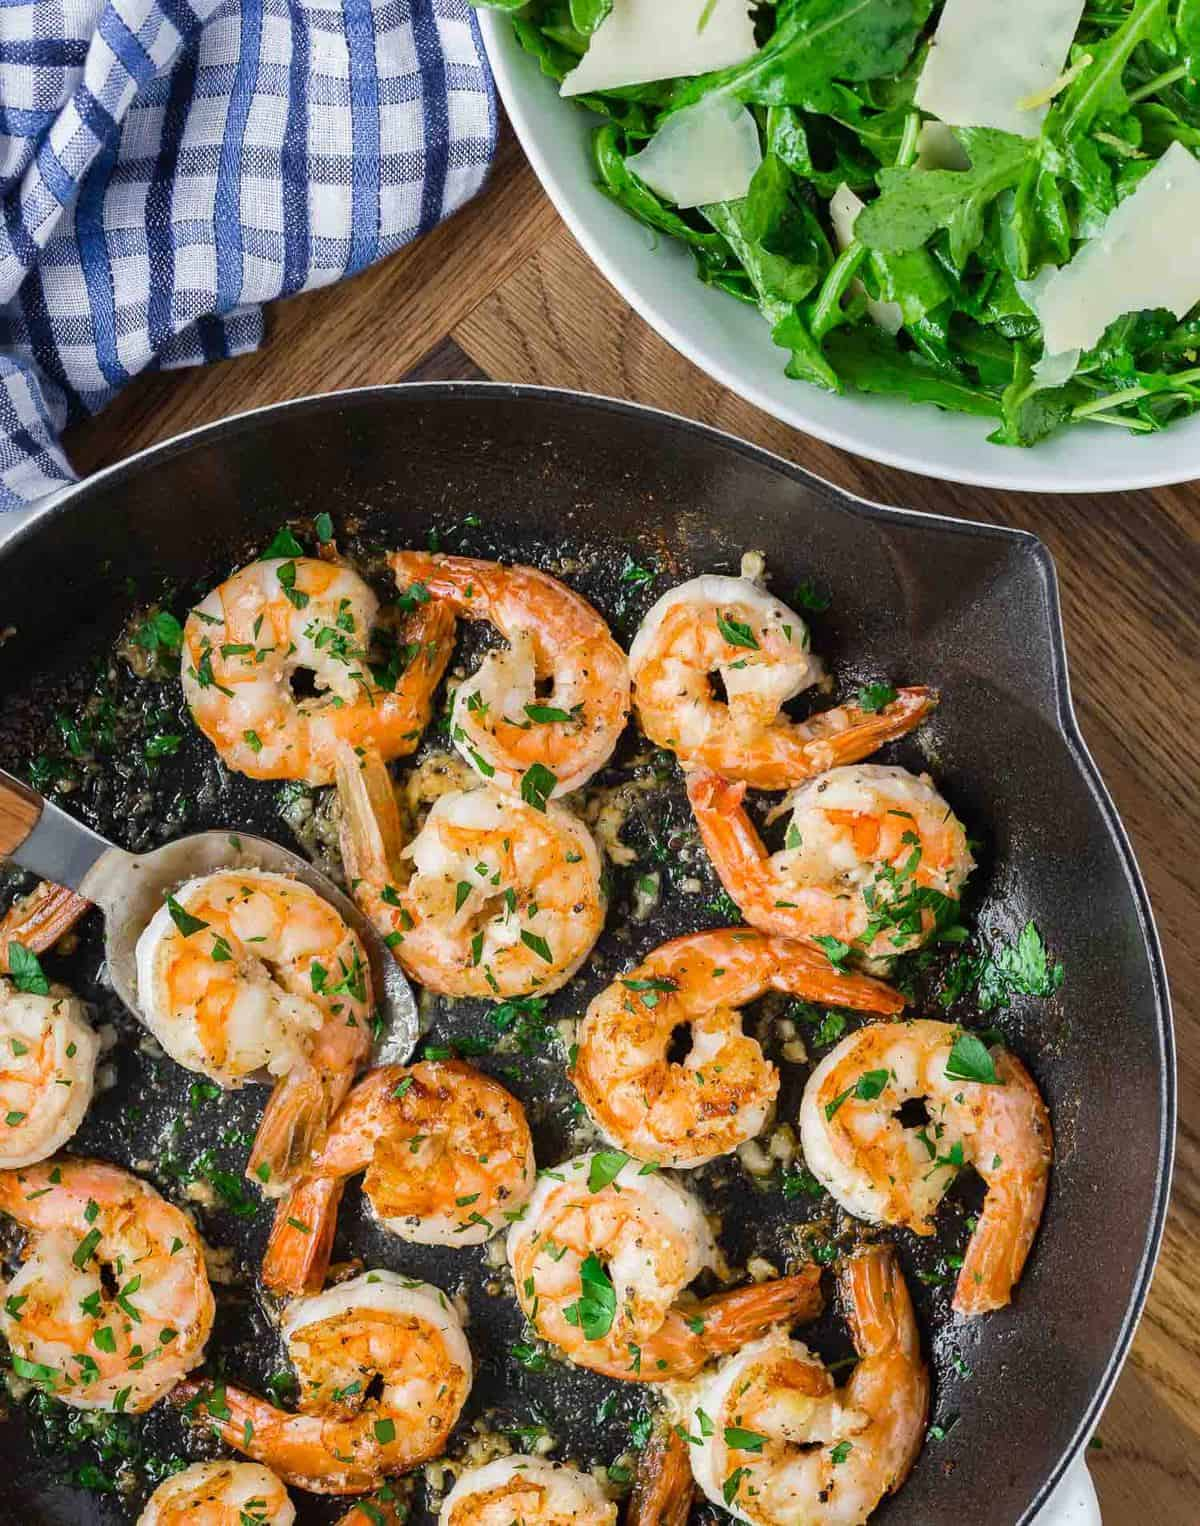 Cooked shrimp in a skillet, a green salad is partially visible.